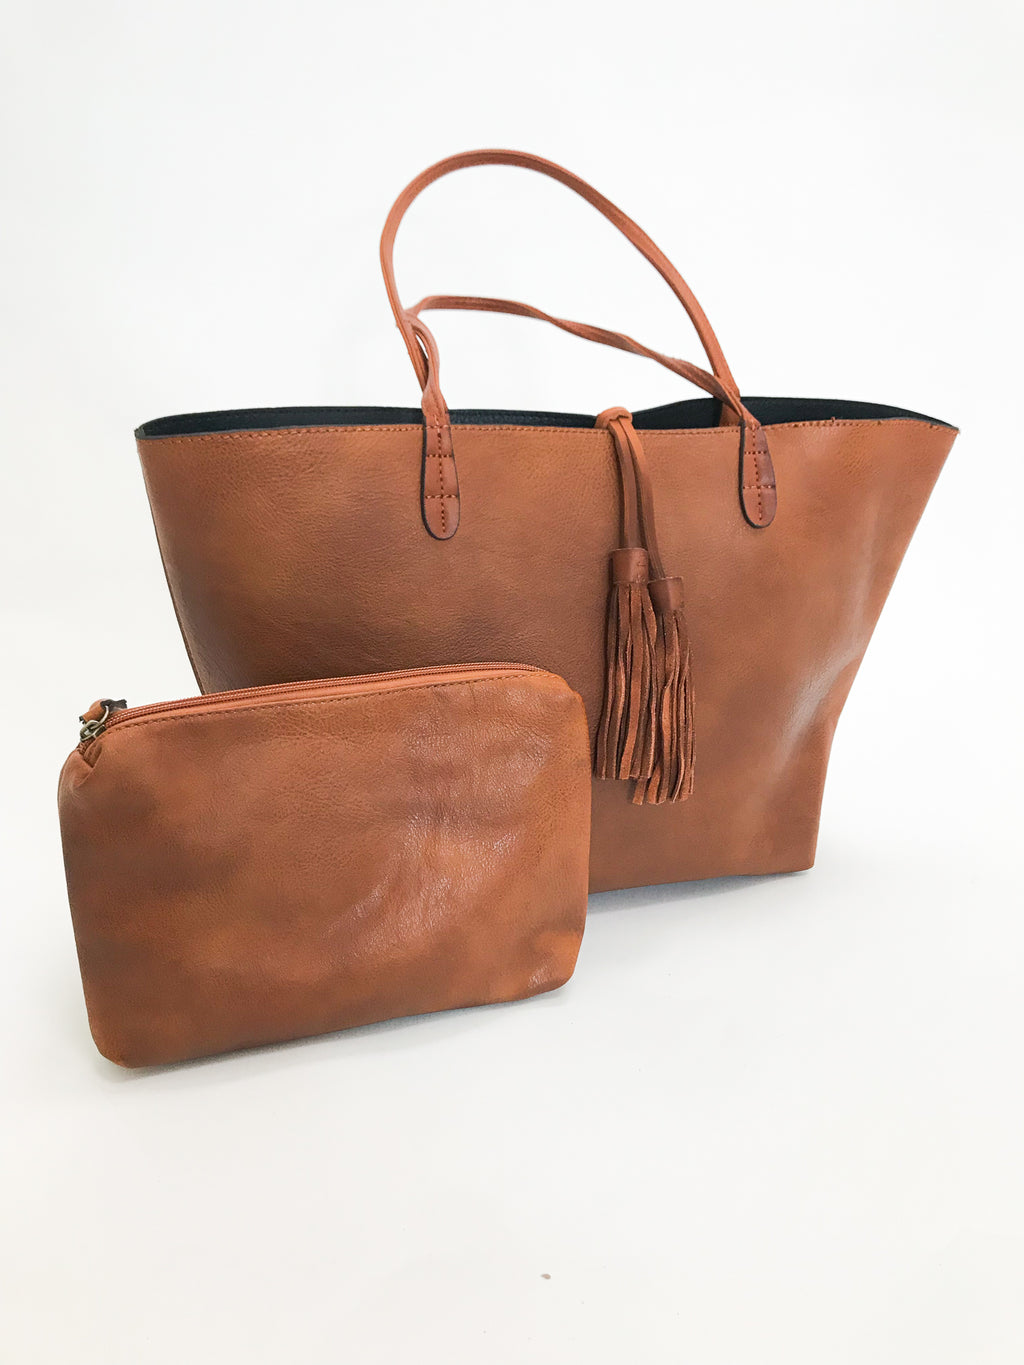 Tassel Tote - Stitch And Feather